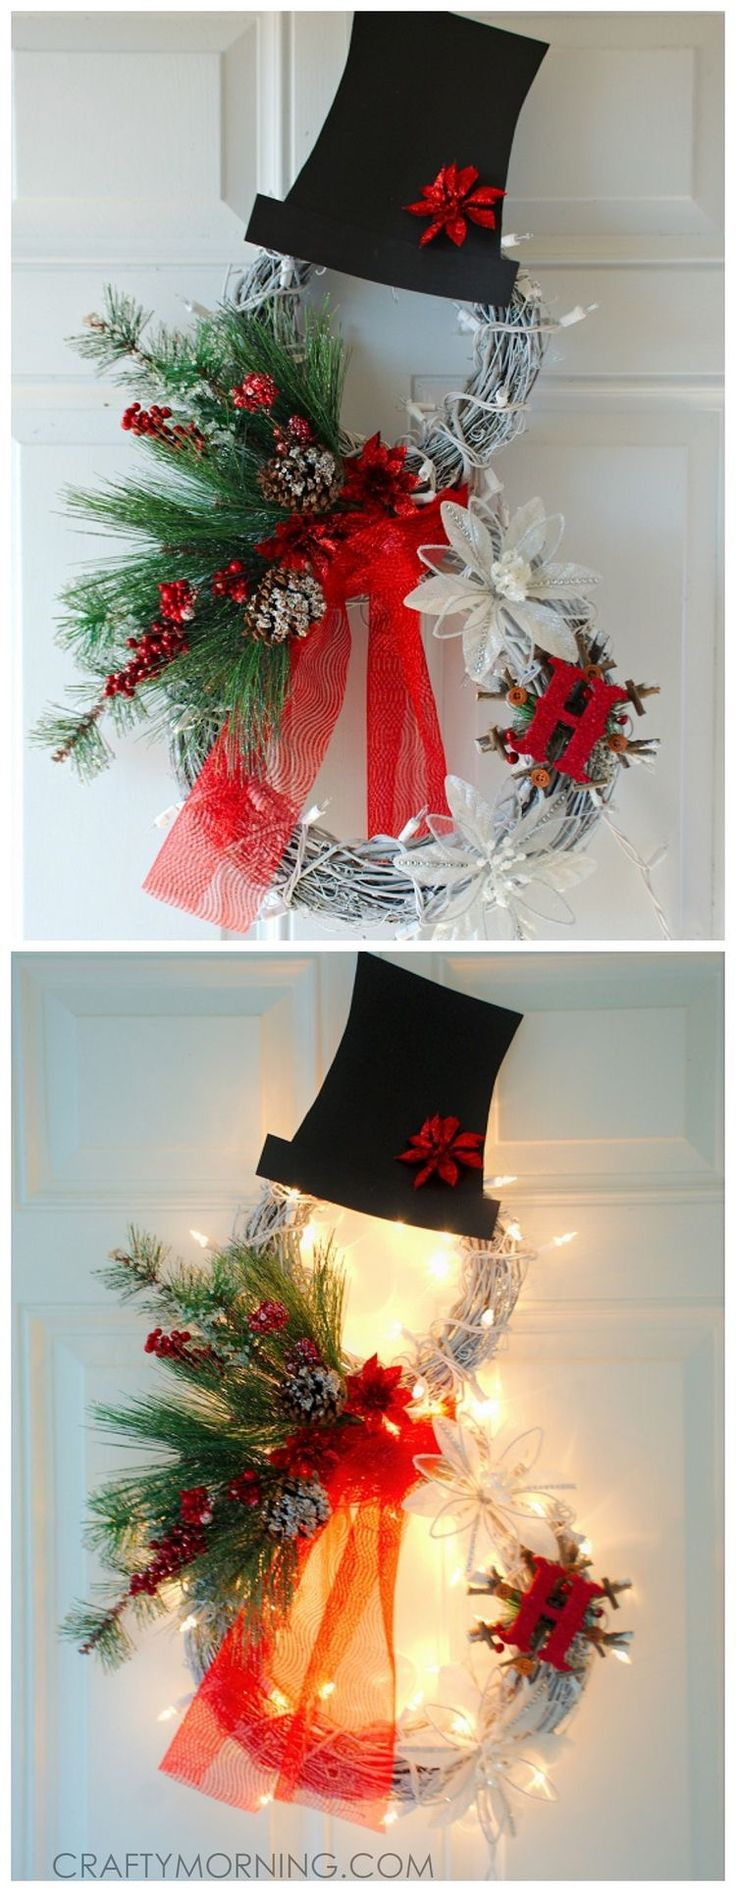 20 best Christmas crafts images on Pinterest | DIY, Cards and Craft  decorations